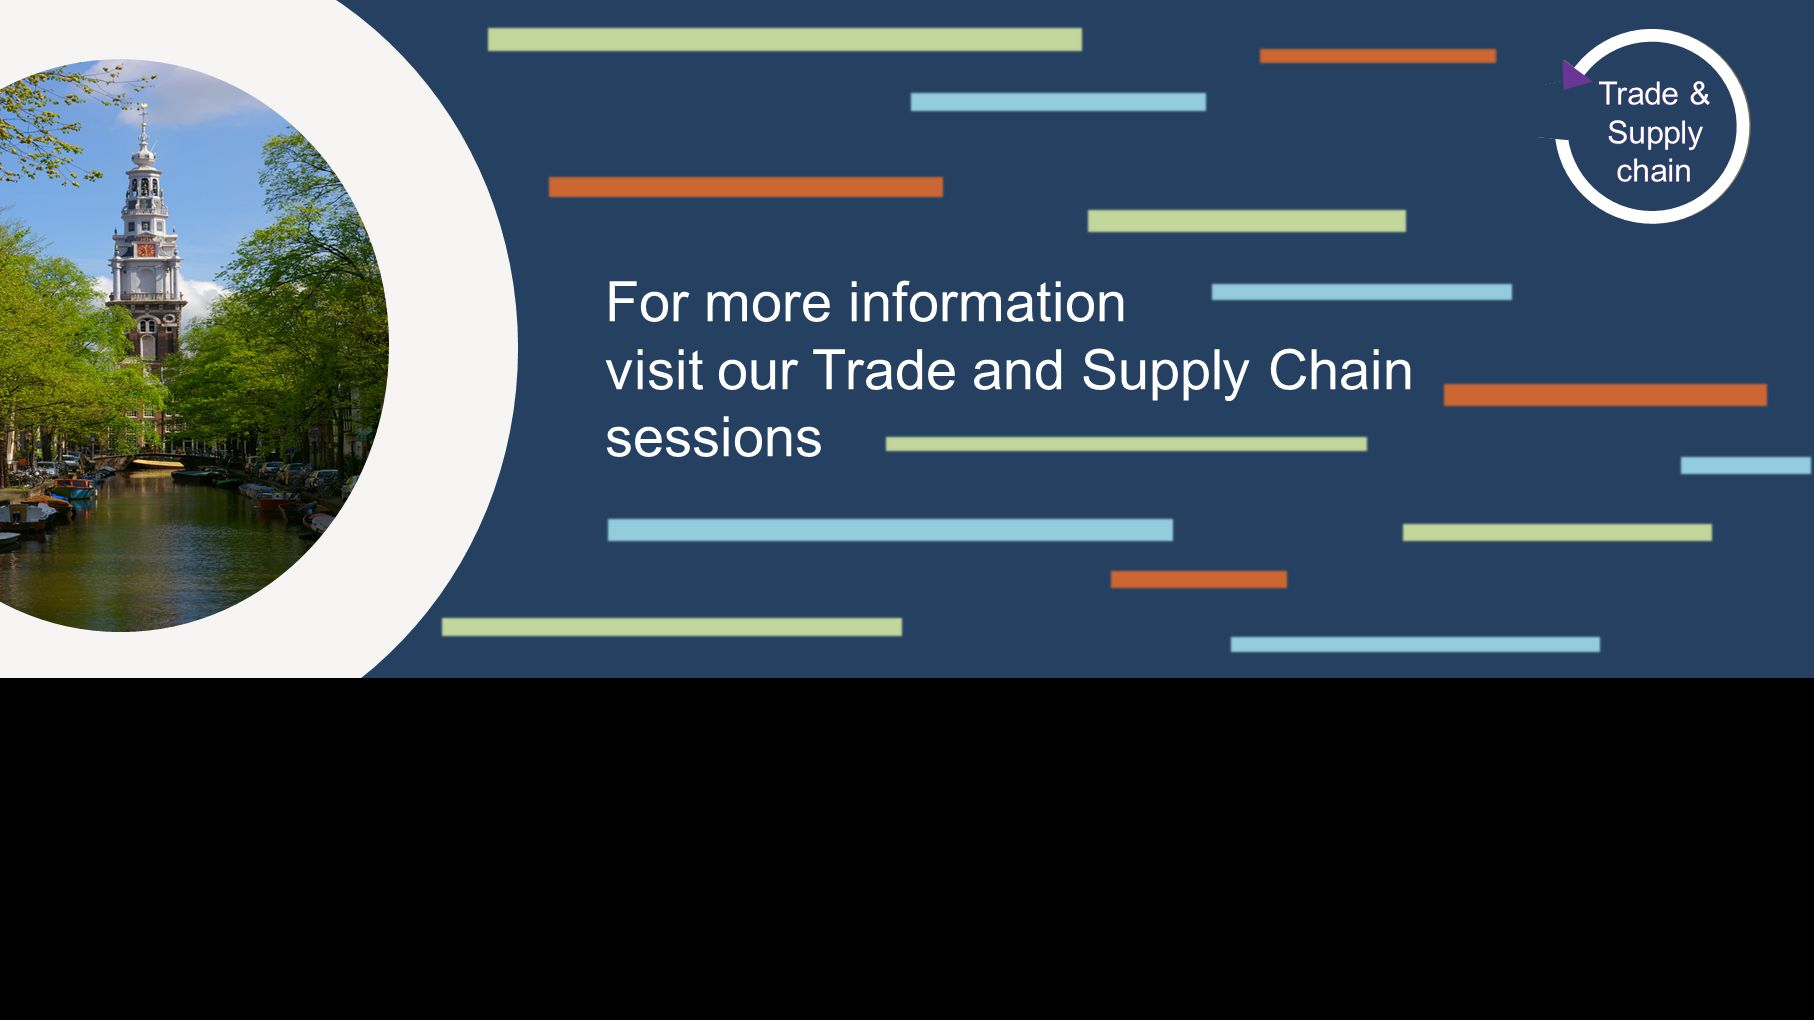 This Area Will Not Be Seen For more information visit our Trade and Supply Chain sessions Trade & Supply chain